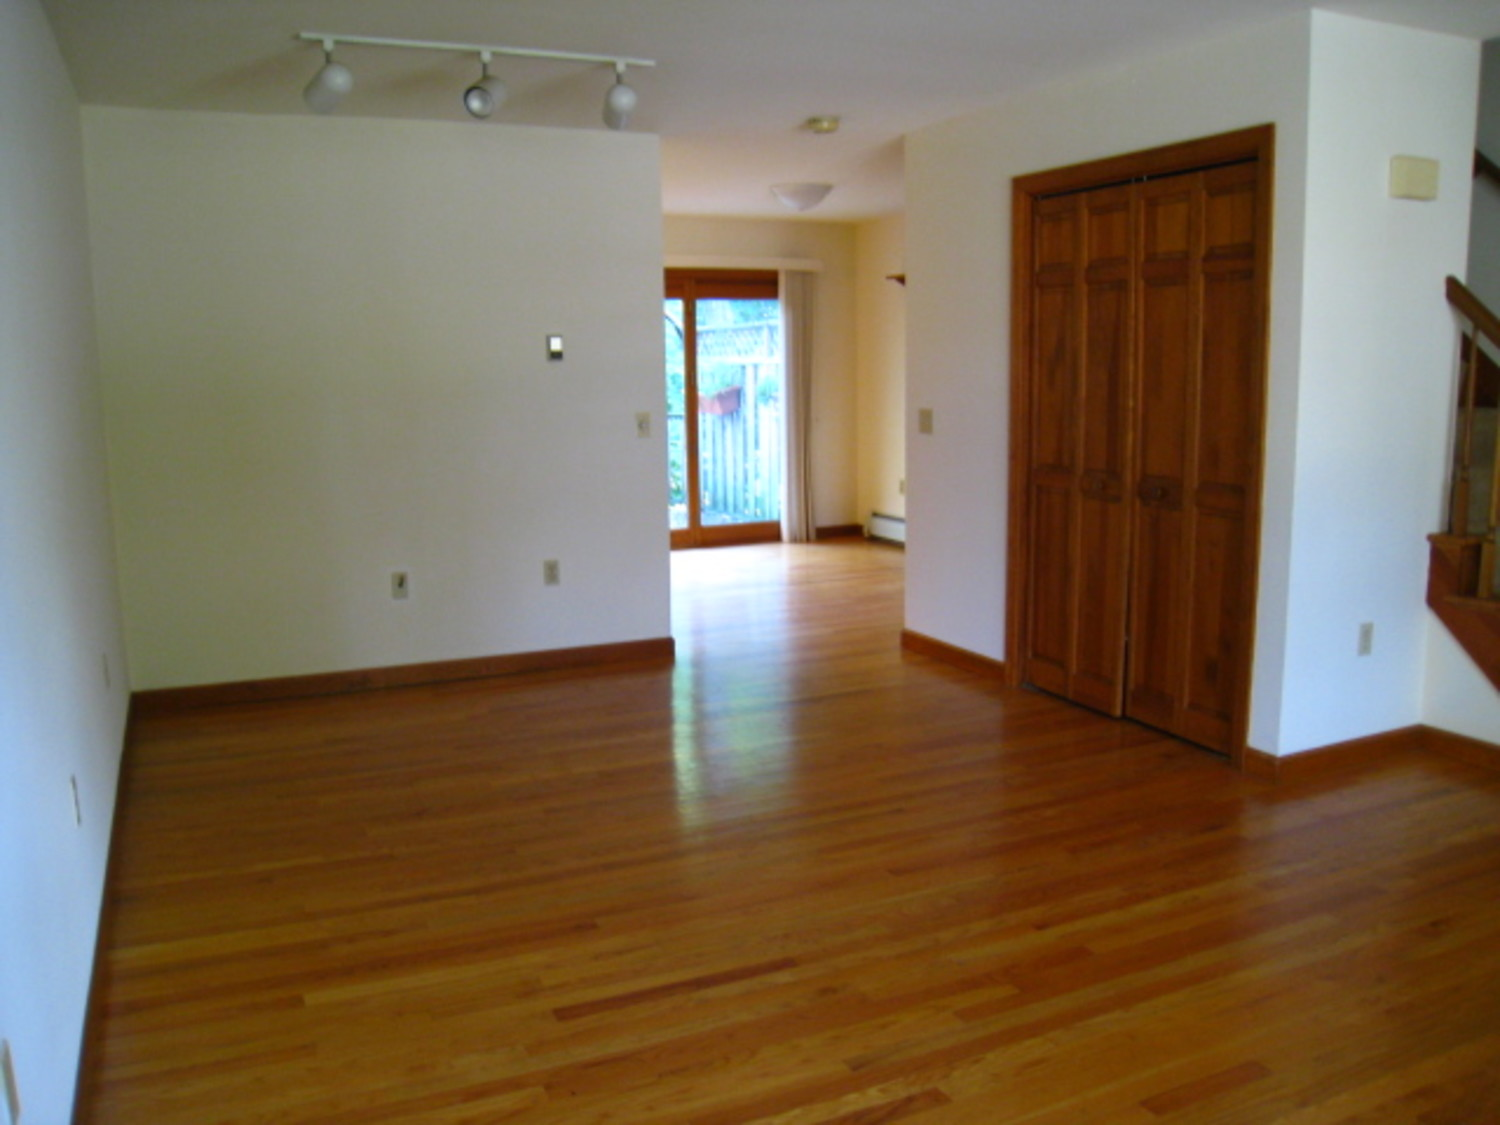 Erin street townhouses 06457 apartment rentals in middletown ct